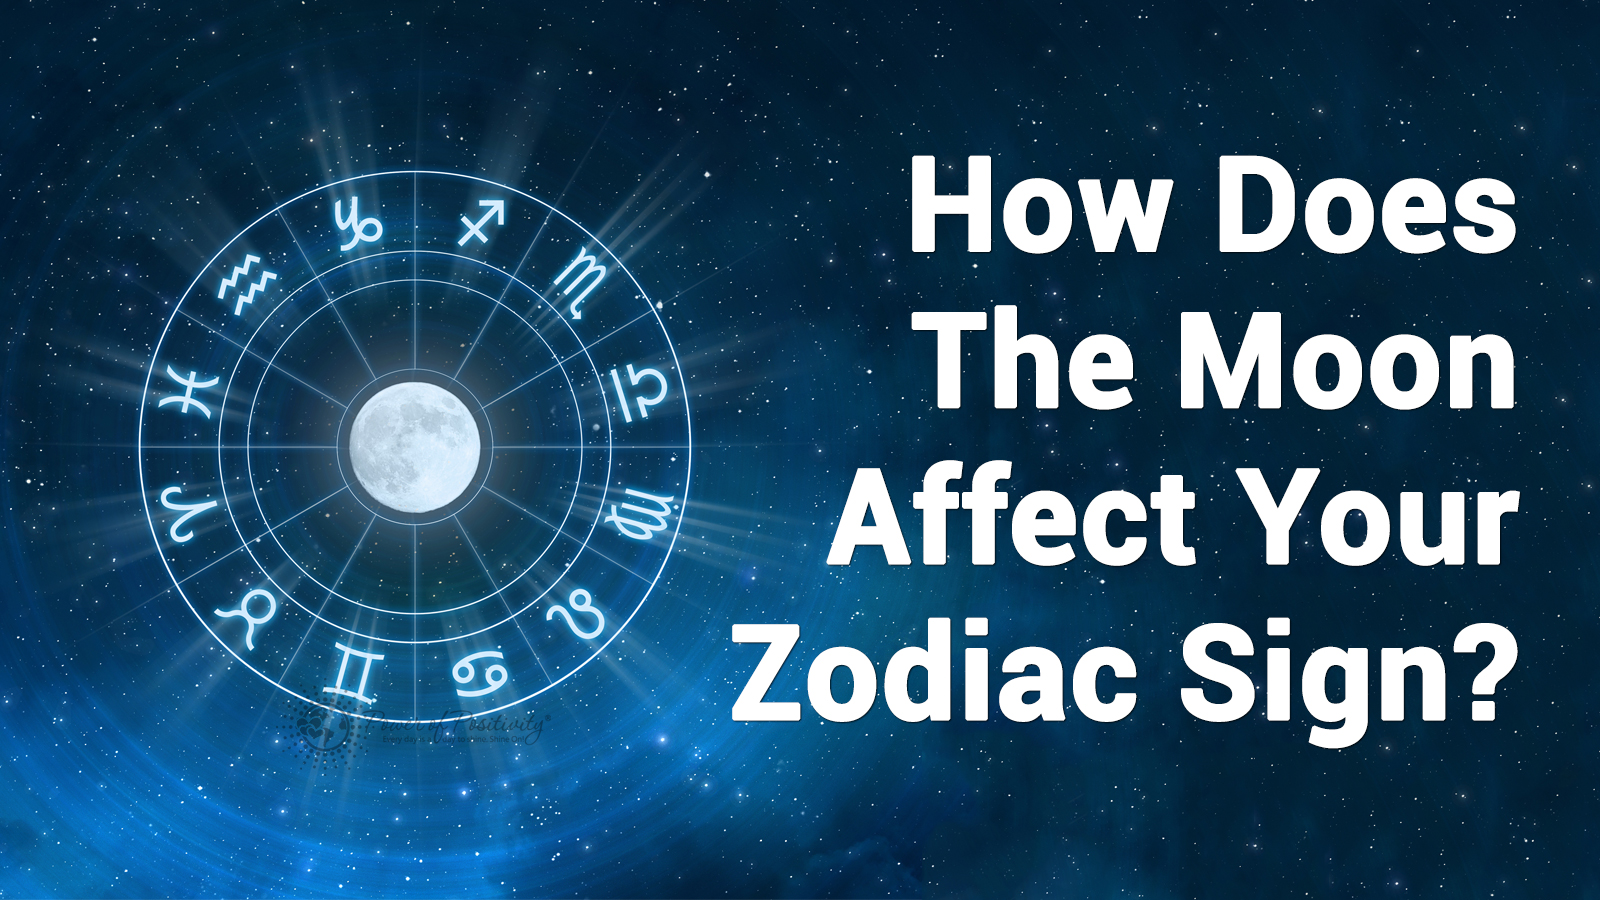 zodiac sign april 18 birthday ; how-does-the-moon-affect-your-zodiac-sign